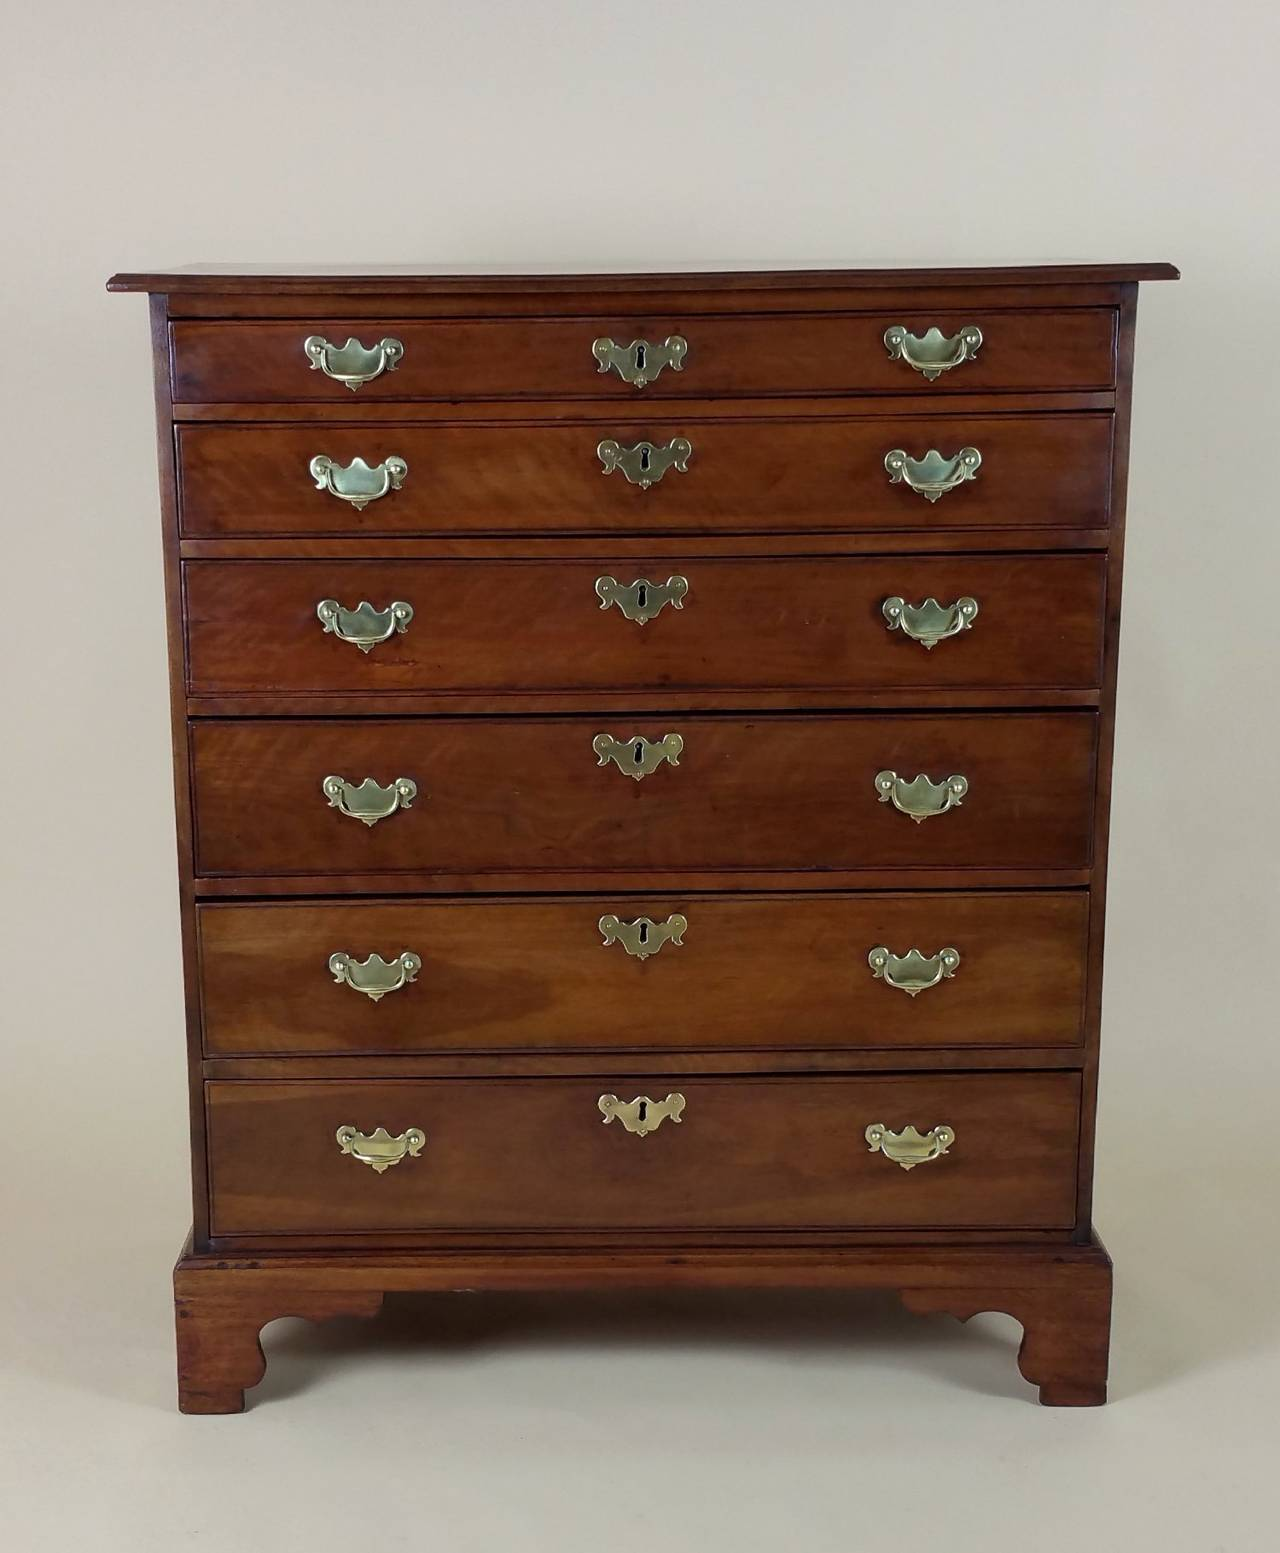 #5F3019  / Case Pieces And Storage Cabinets / Commodes And Chests Of Drawers with 1280x1553 px of Best Chest Of Drawers Solid Wood 15531280 image @ avoidforclosure.info